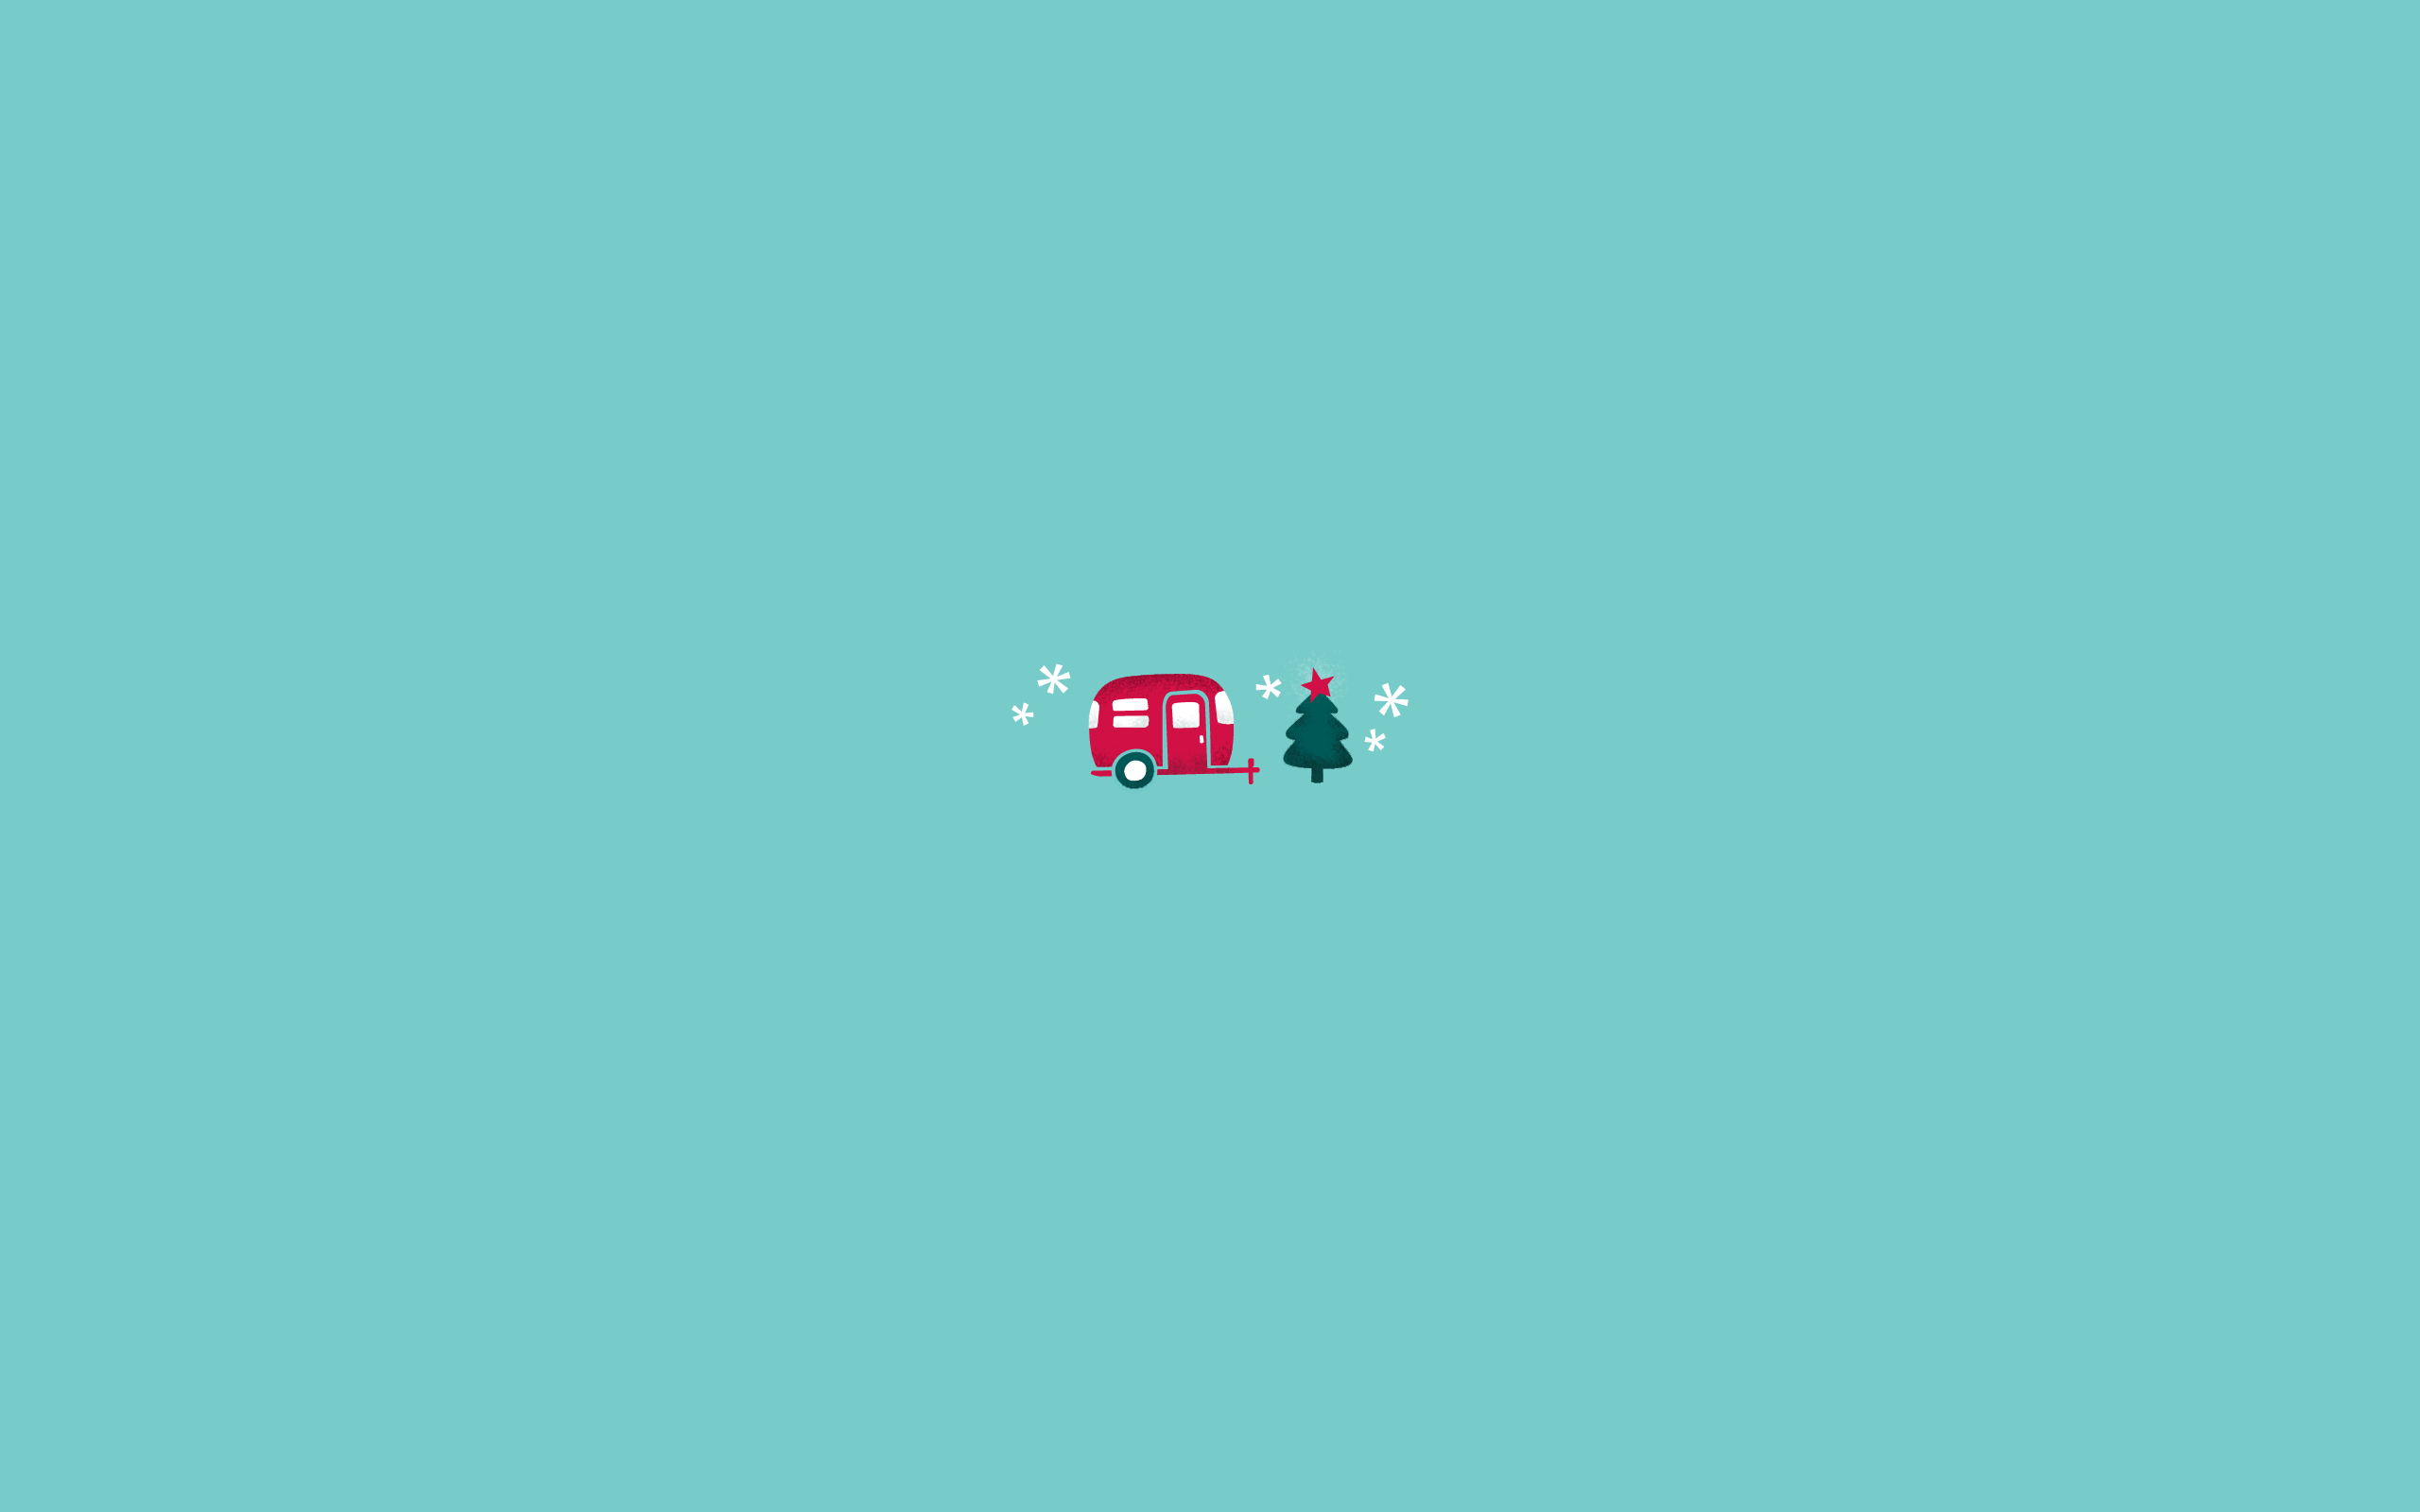 Christmas Theme Christmas Desktop Wallpaper Cute Desktop Wallpaper Minimalist Desktop Wallpaper